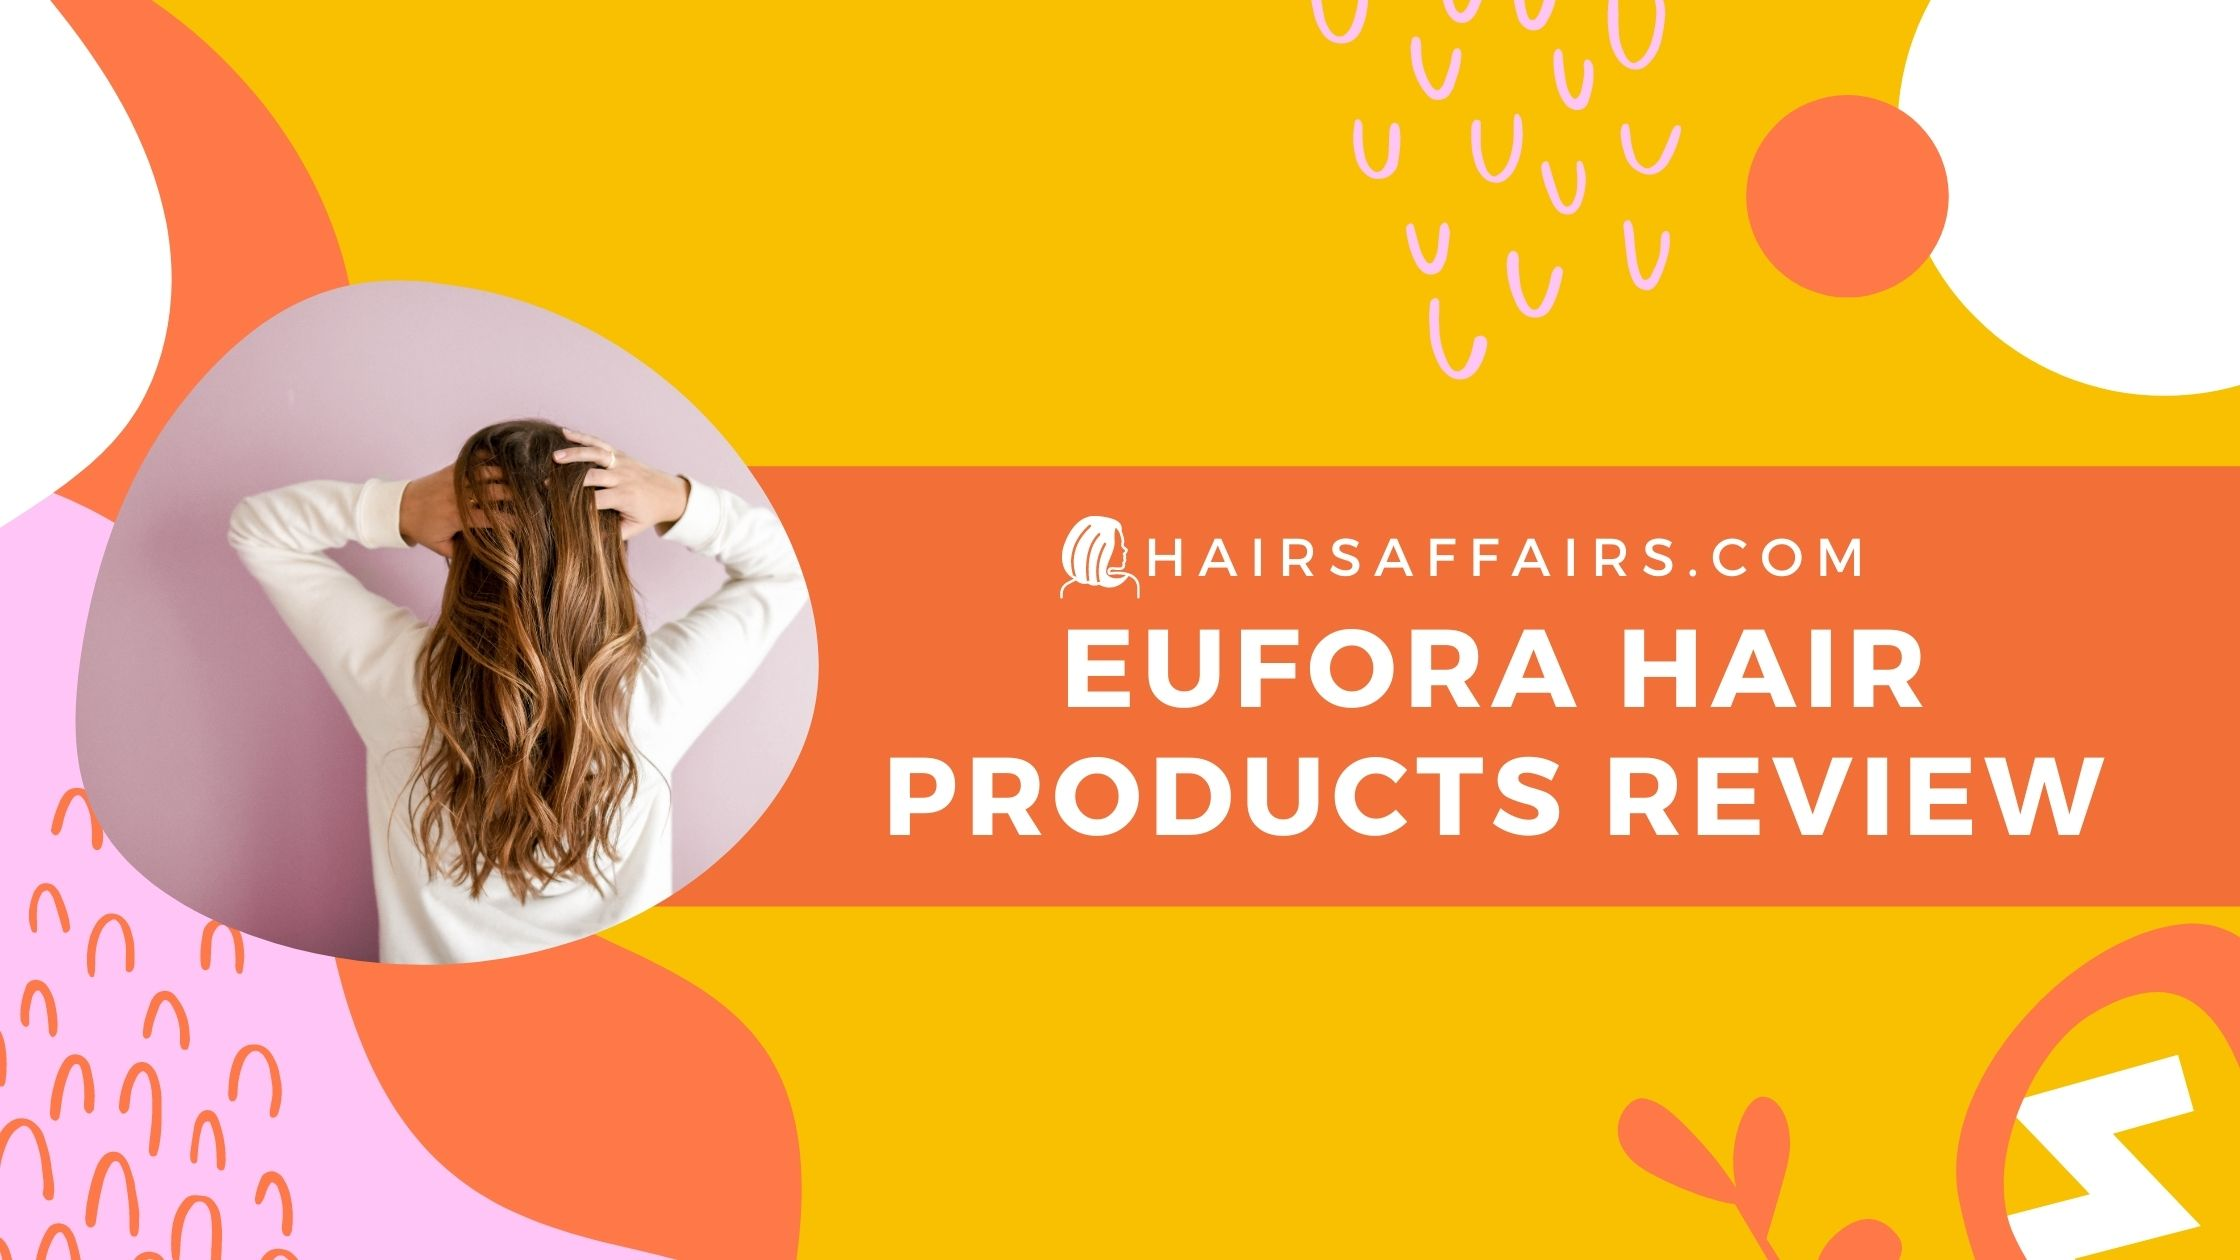 HA-Eufora-hair-products-review